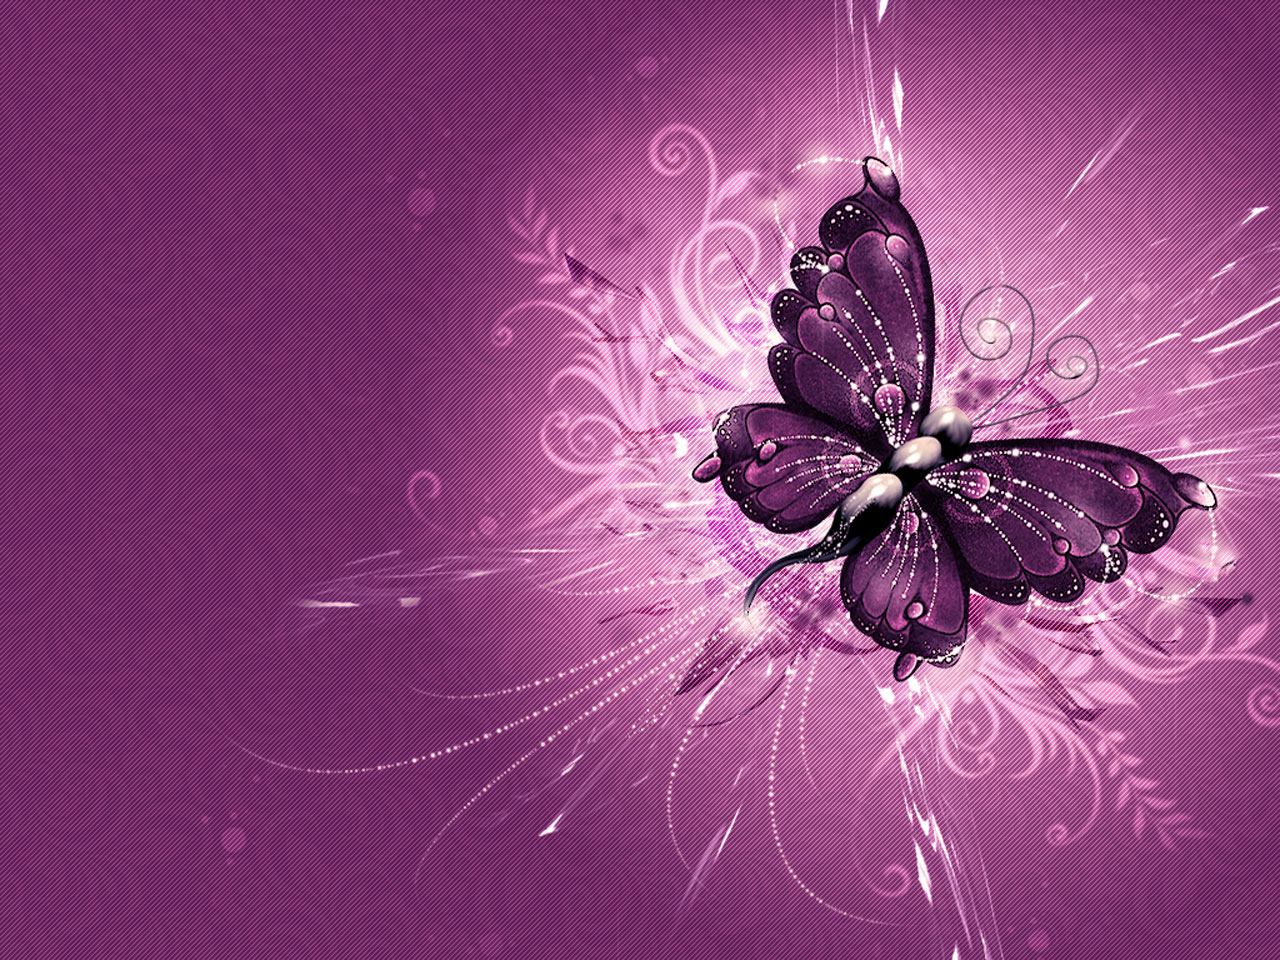 Butterfly Wallpaper 3D Wallpaper Nature Wallpaper 1280x960